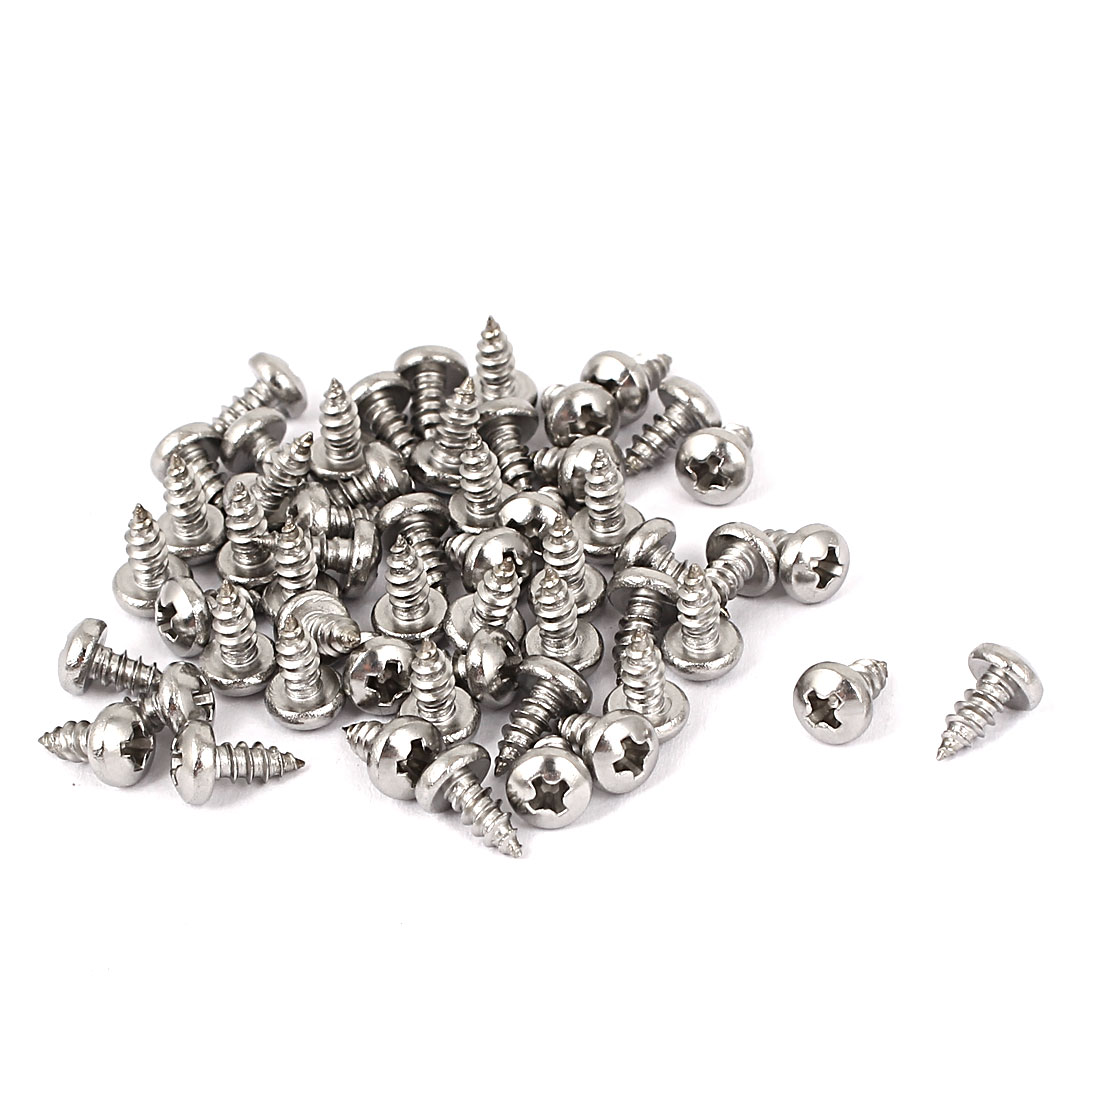 #4 M2.9x6.5mm Stainless Steel Phillips Round Pan Head Self Tapping Screws 50pcs